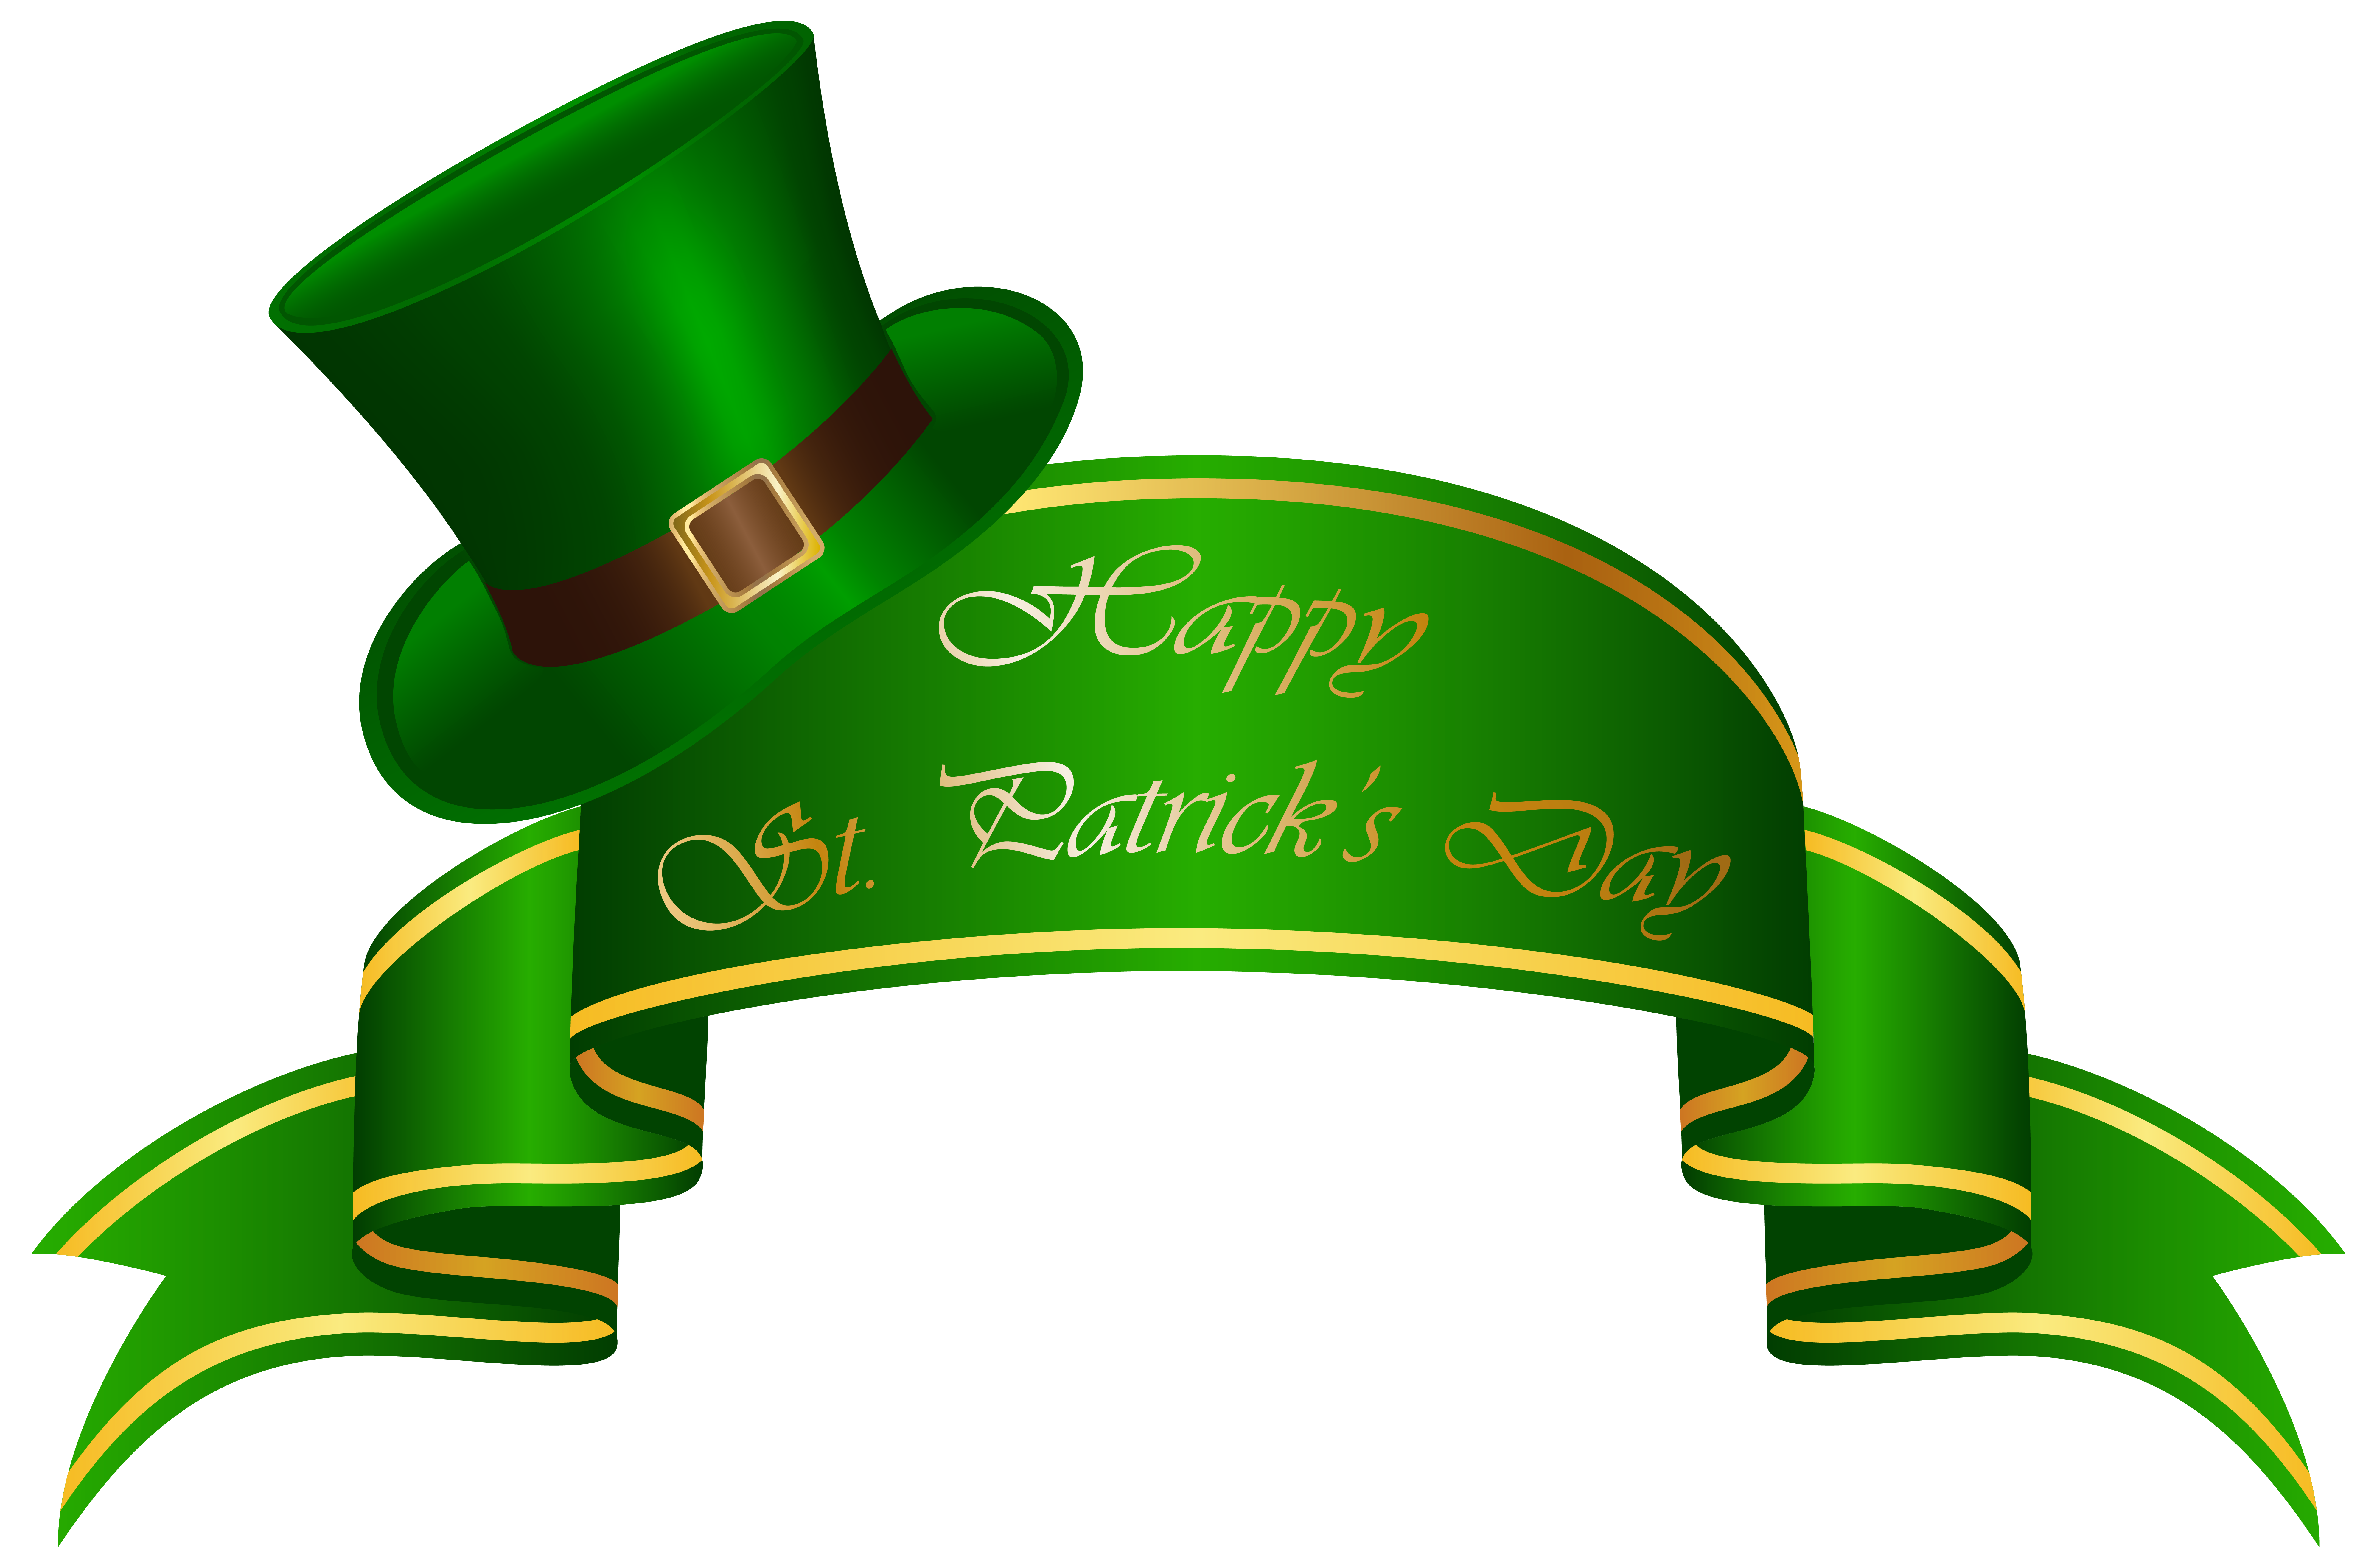 Banner and hat transparent. Clipart free st patricks day